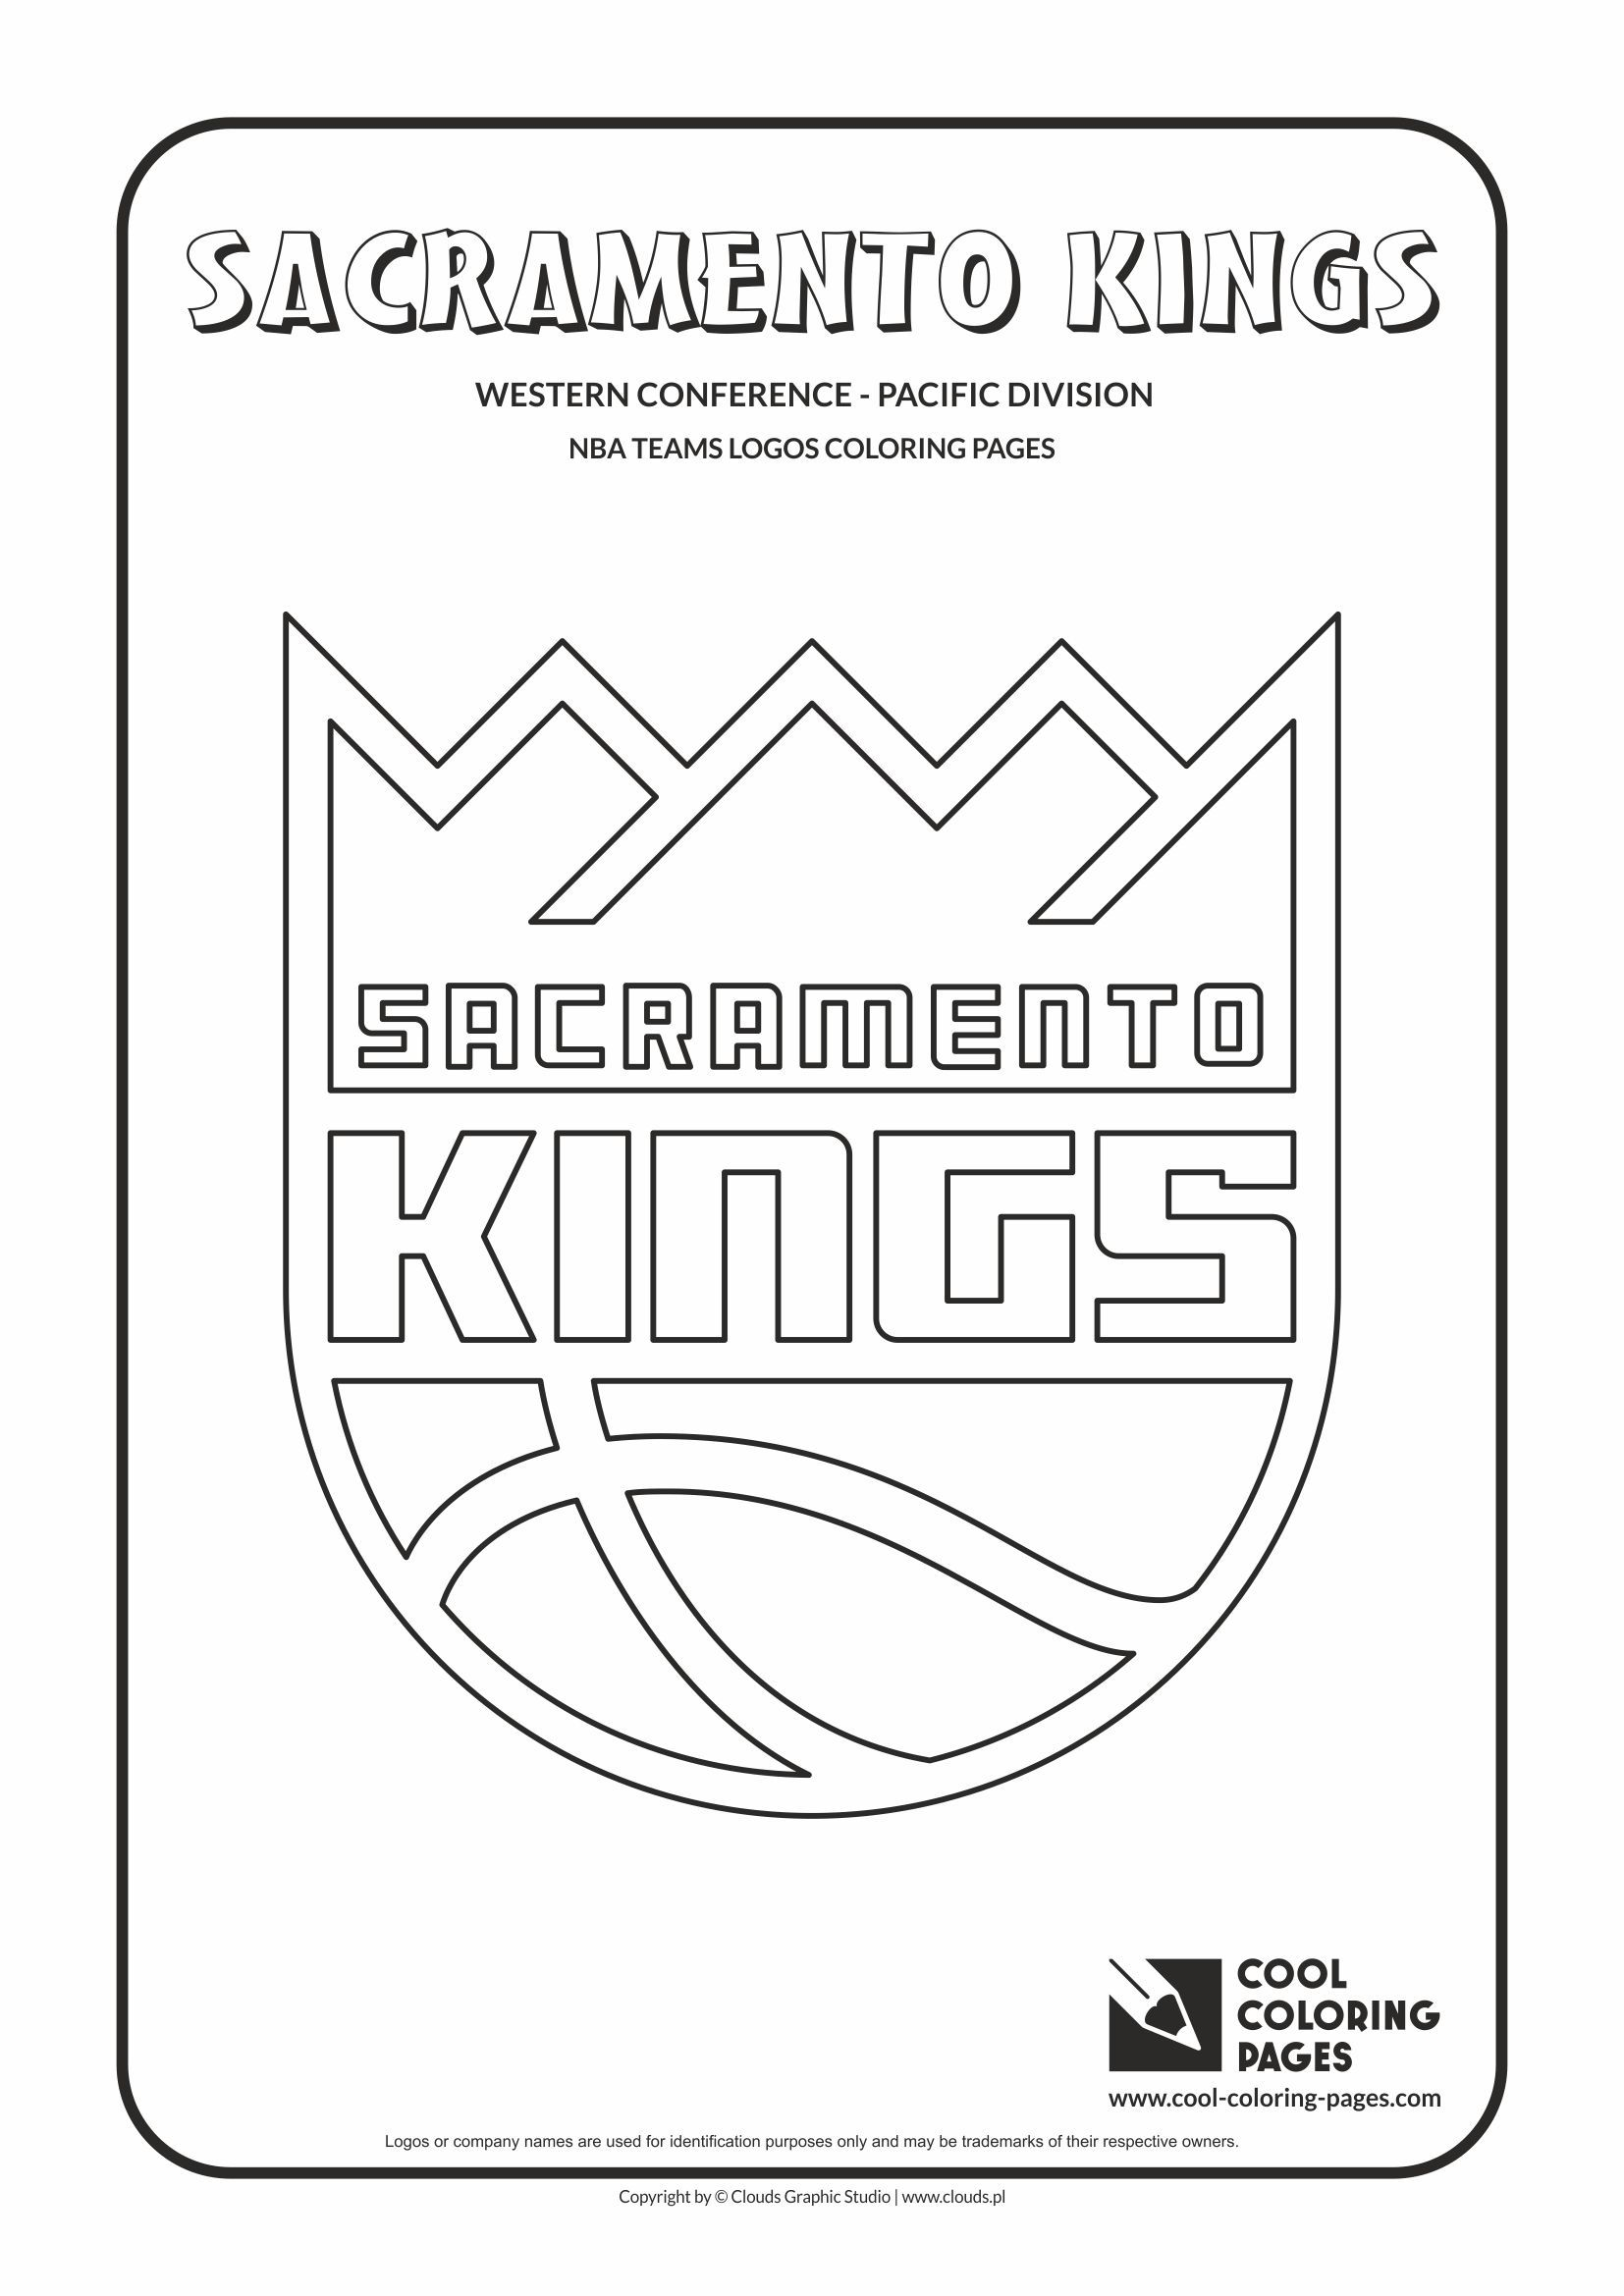 Cool Coloring Pages Nba Basketball Clubs Logos Western Conference Pacific Nba Basketball Teams Nba Basketball Coloring Pages